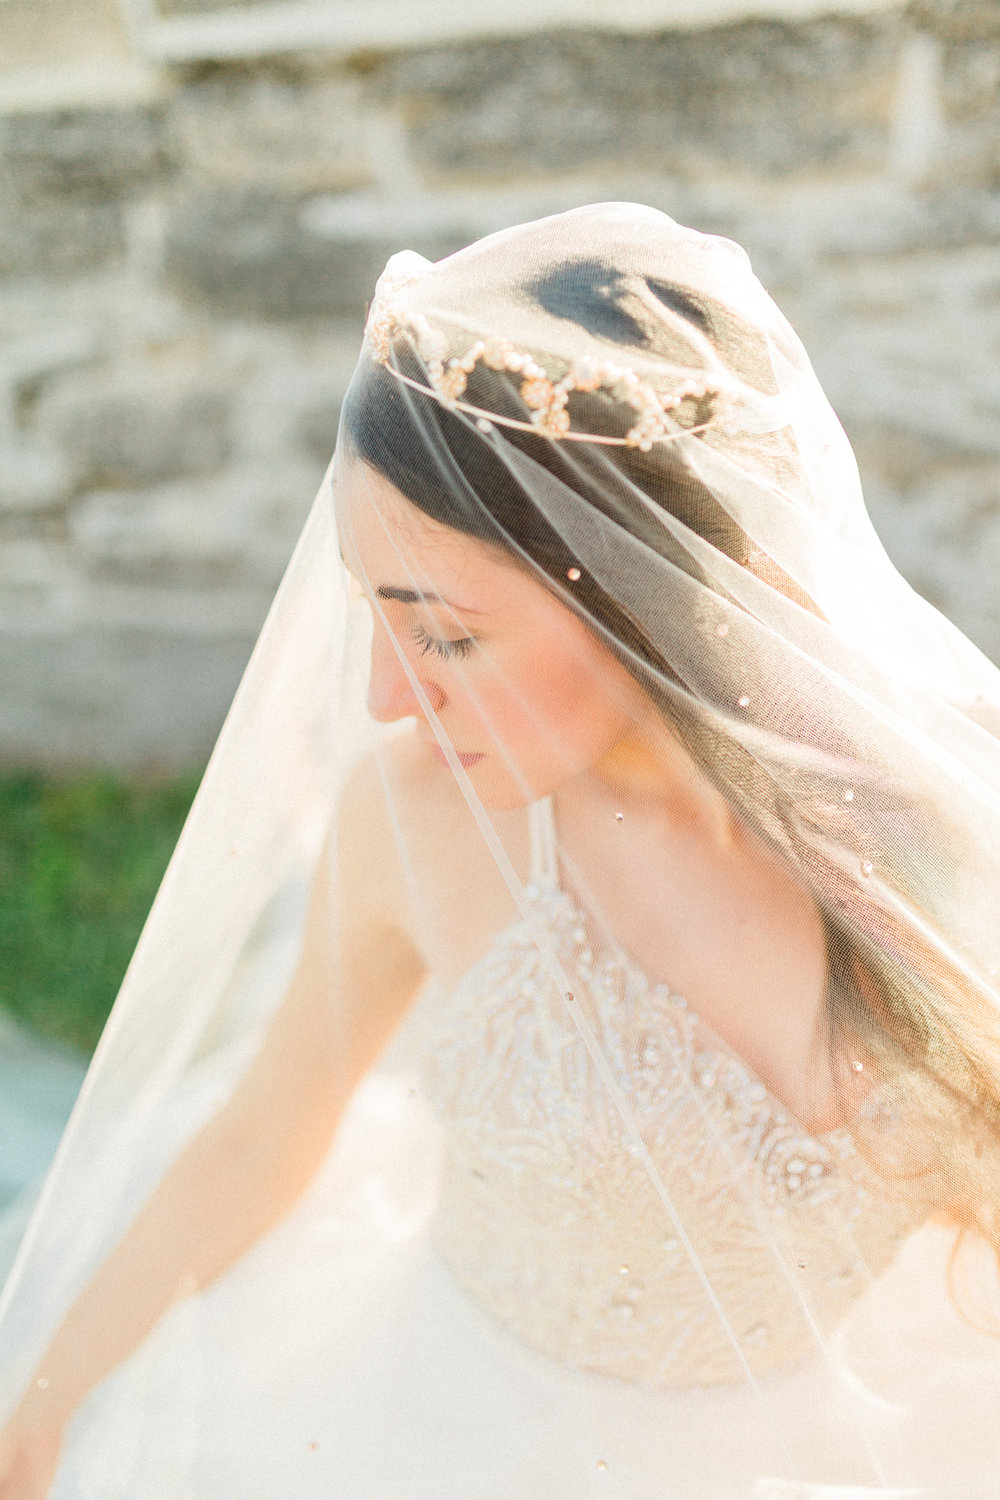 St. augustine, castillo de san marcos styled wedding bridal photo, bride with veil